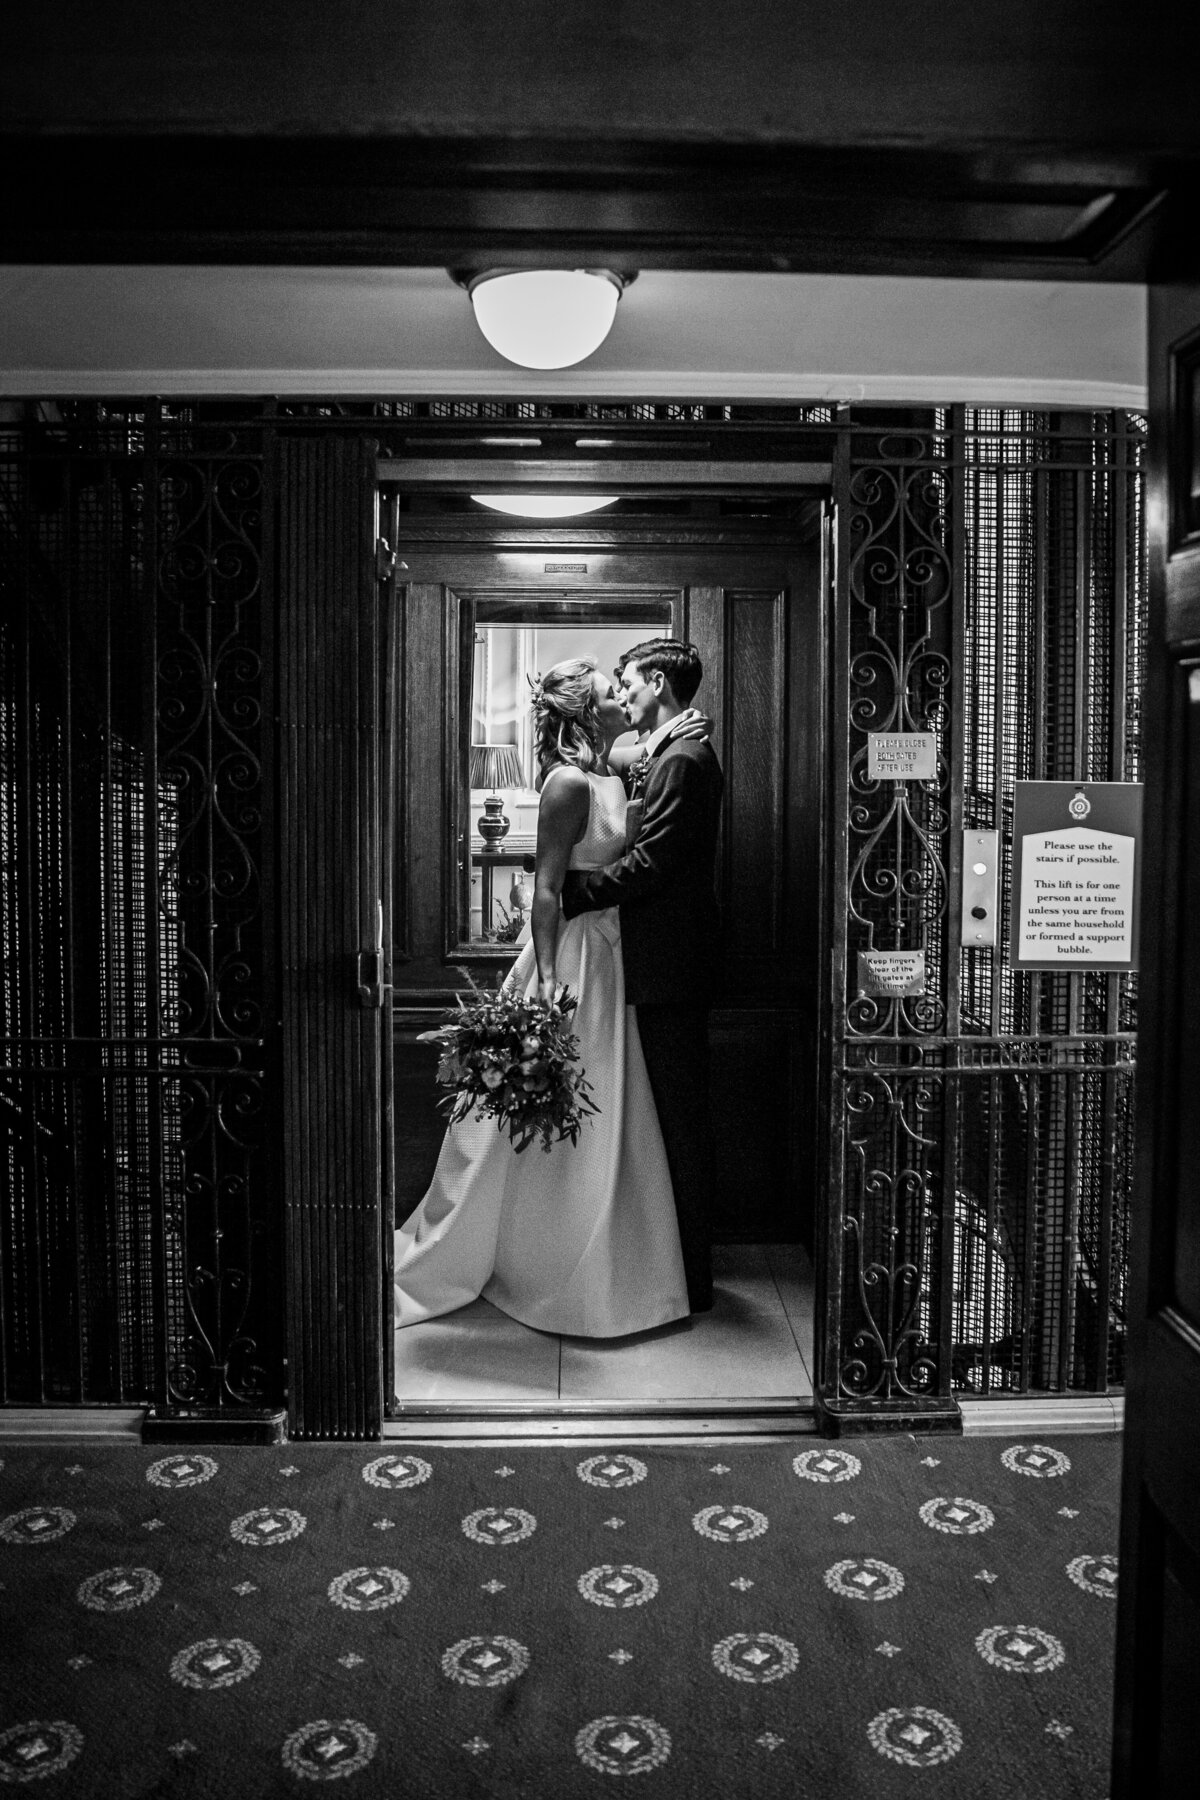 Bride and Groom kissing in a lift